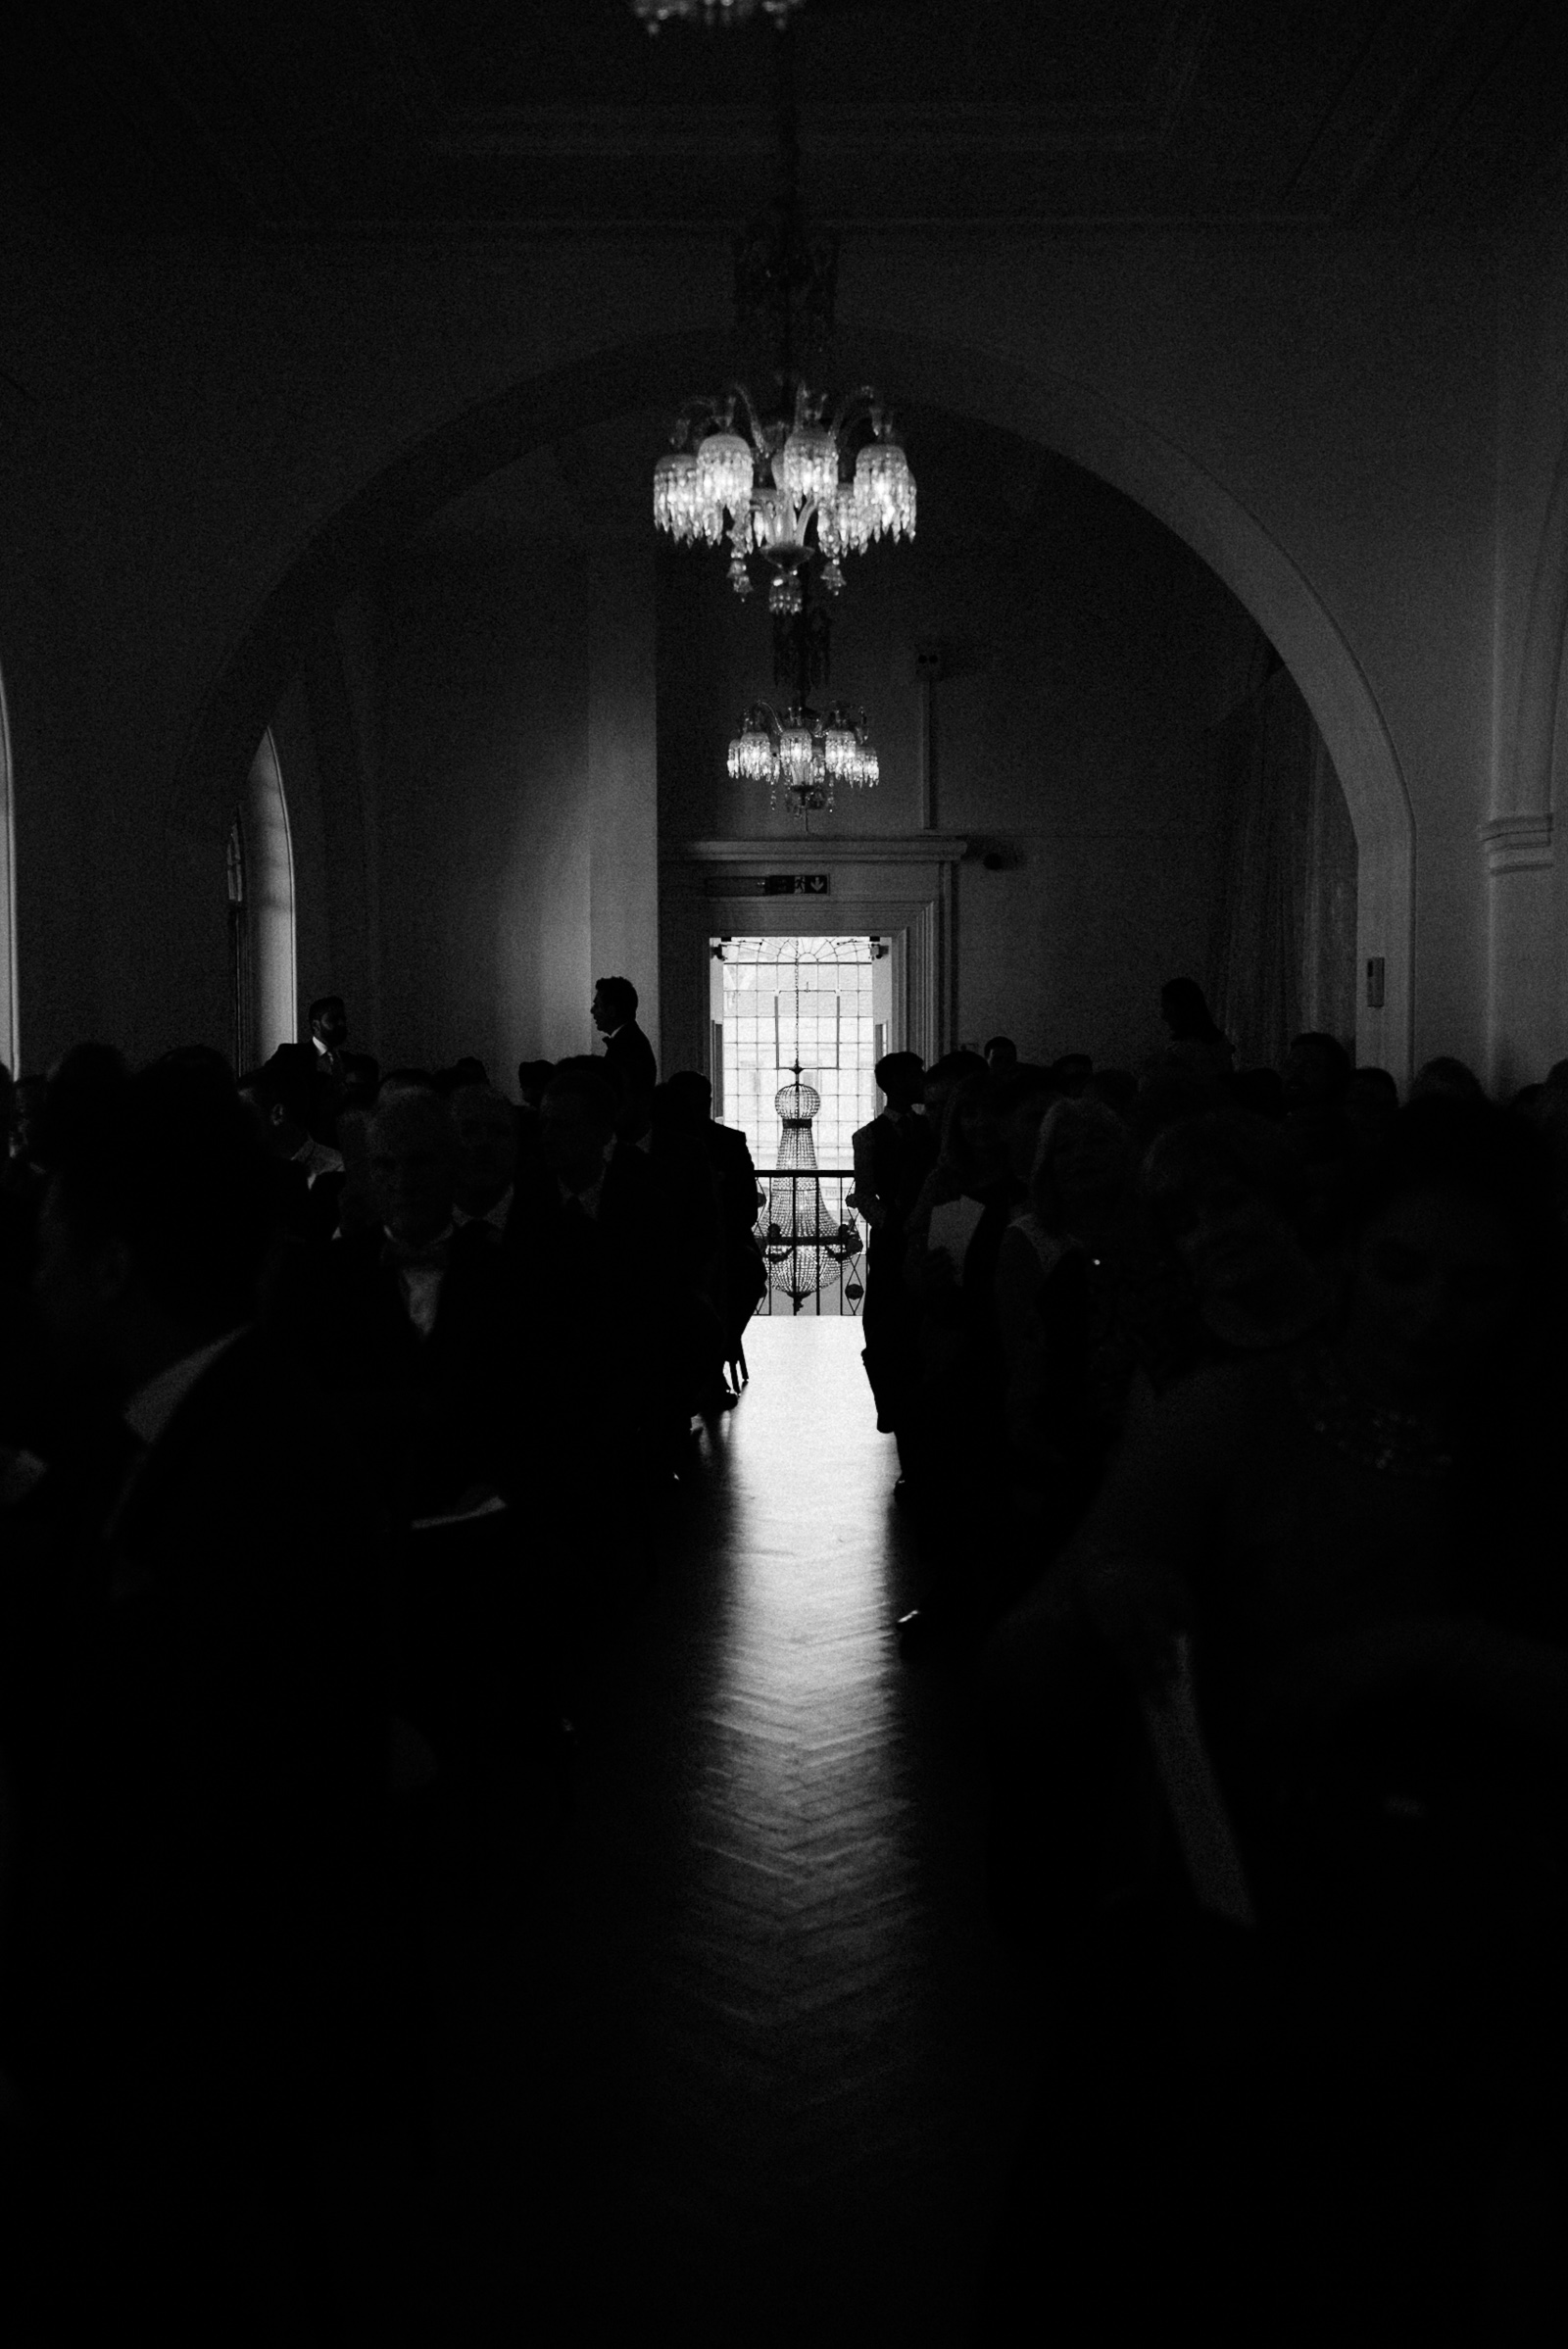 moody photograph of the ceremony room at Marylebone One, London